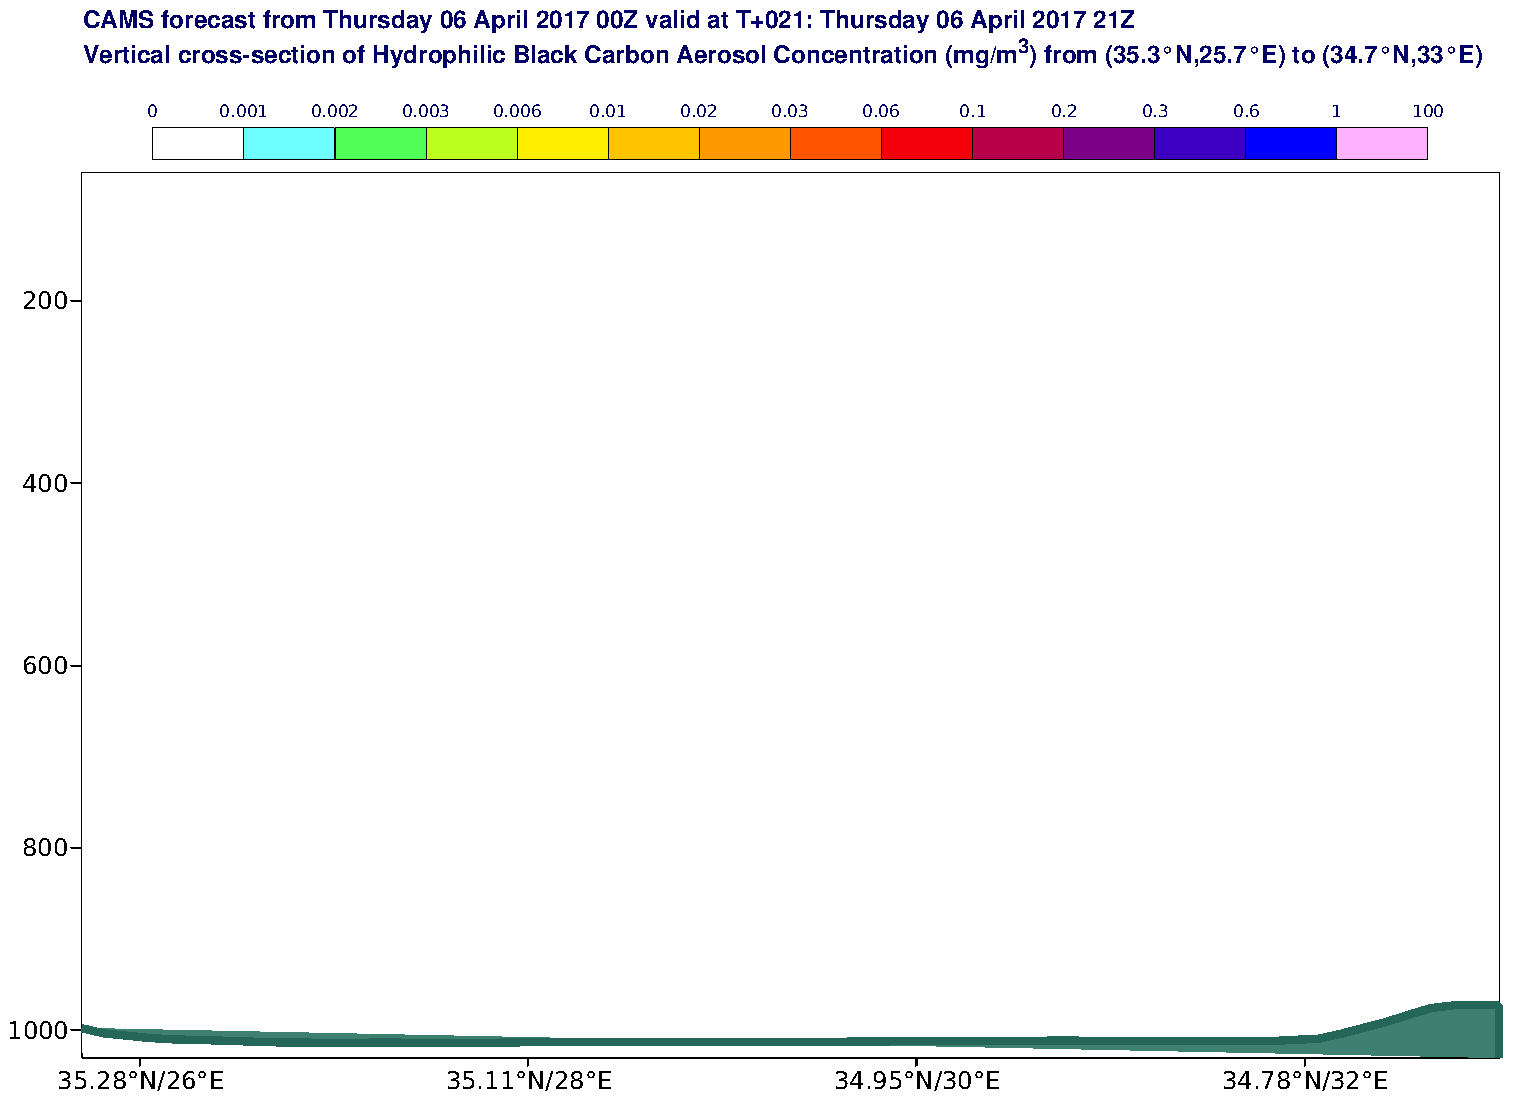 Vertical cross-section of Hydrophilic Black Carbon Aerosol Concentration (mg/m3) valid at T21 - 2017-04-06 21:00